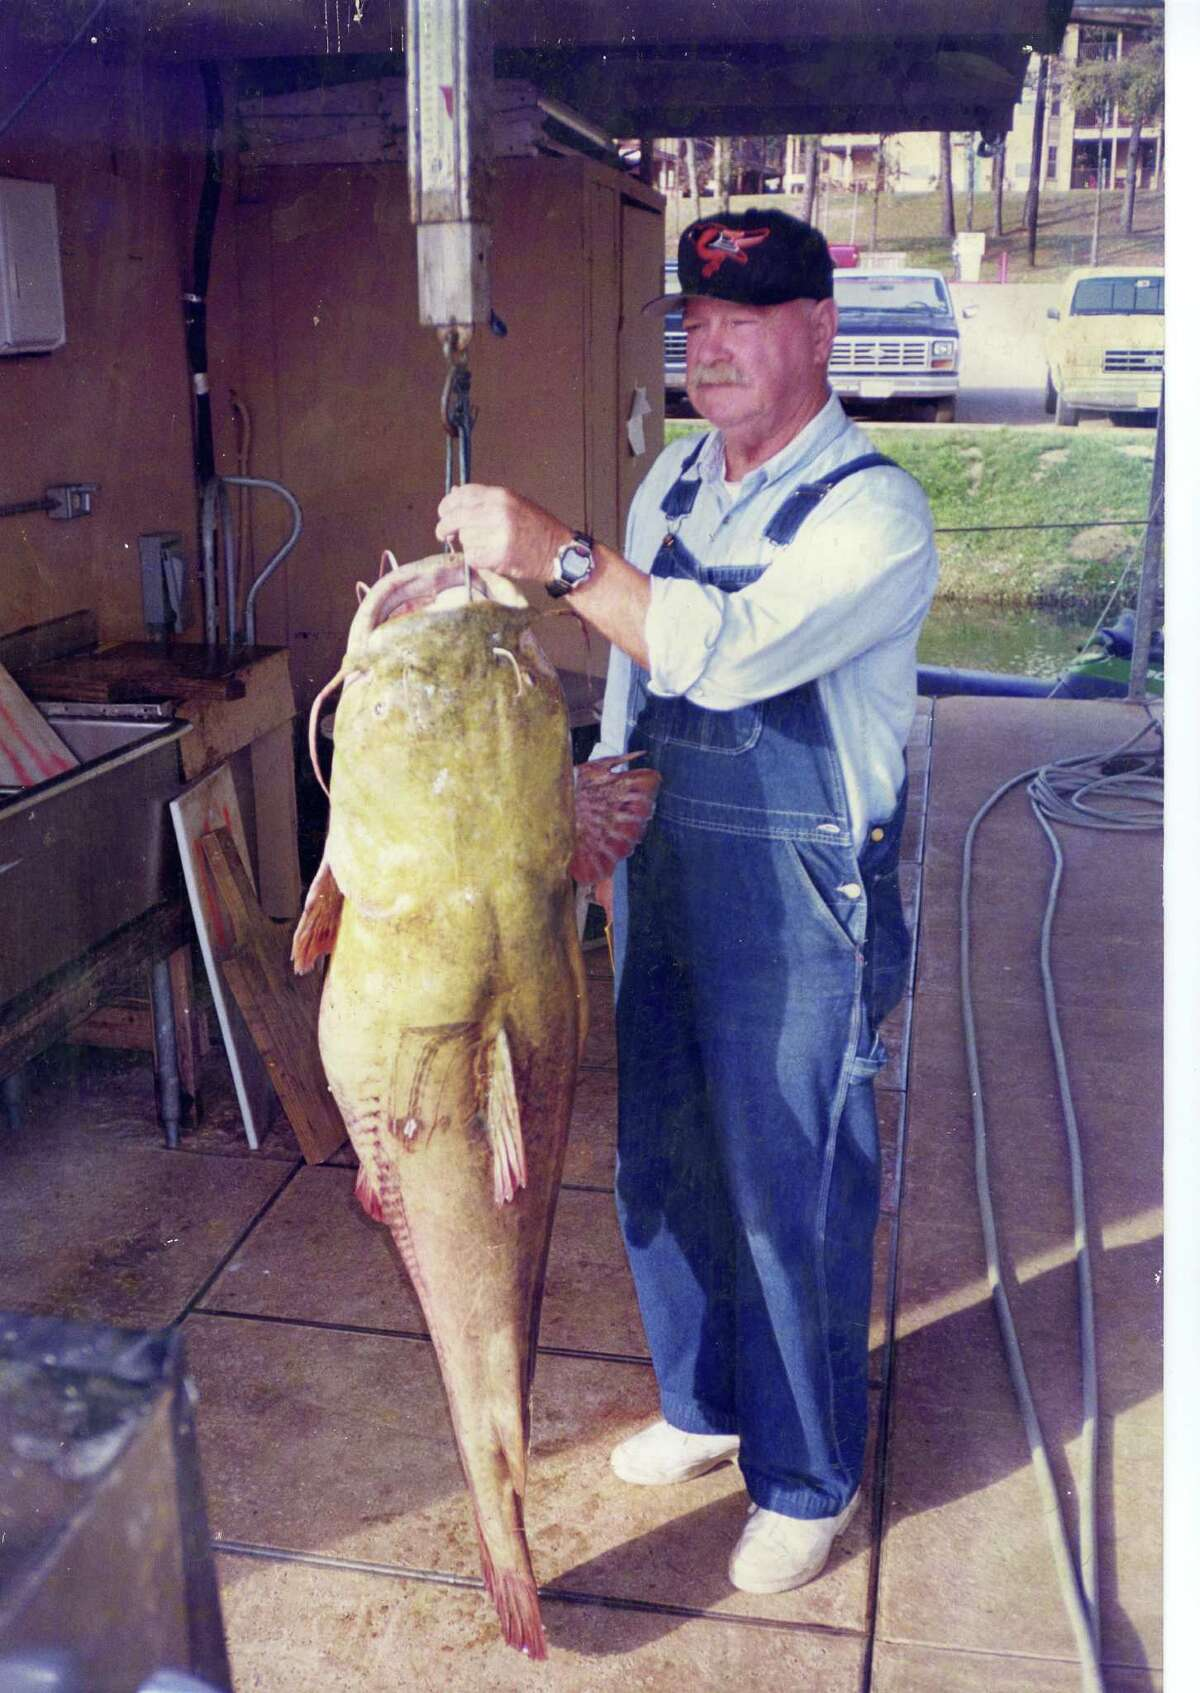 Texas record for freshwater, flathead catfish is 98.5 pounds, caught by James Laster at Lake Palestine December 2, 1998.